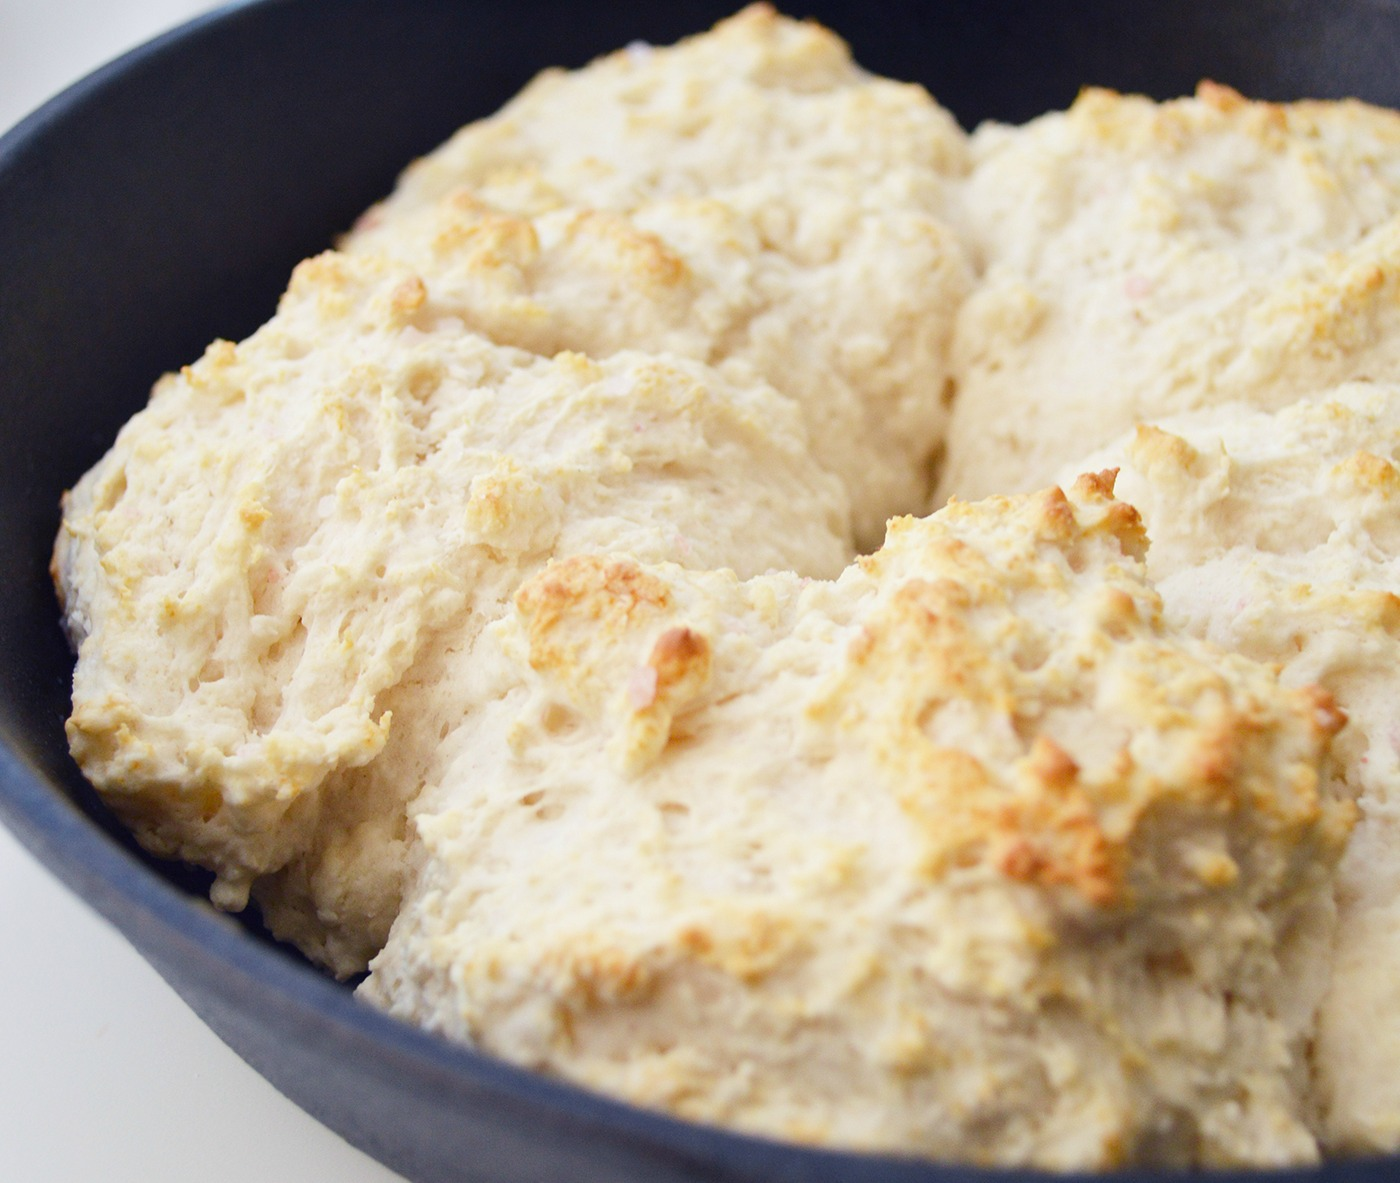 Dairy and Egg Free Southern Skillet Biscuits